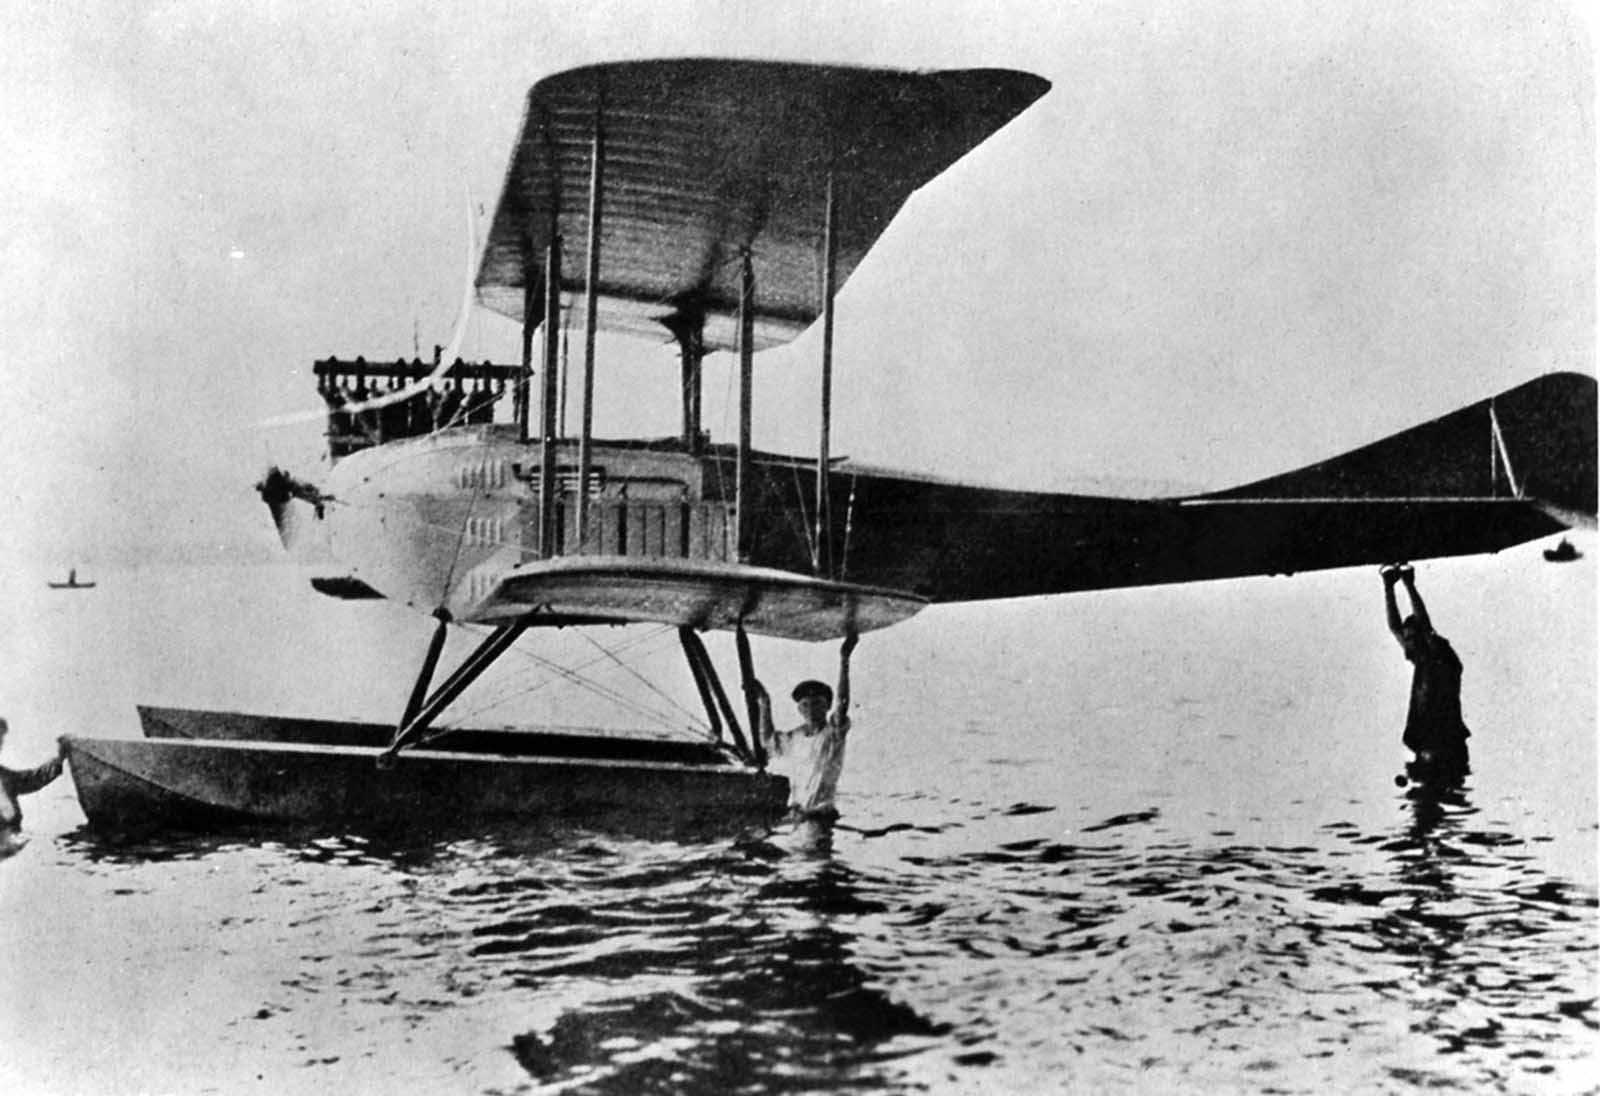 German hydroplane, ca. 1918.